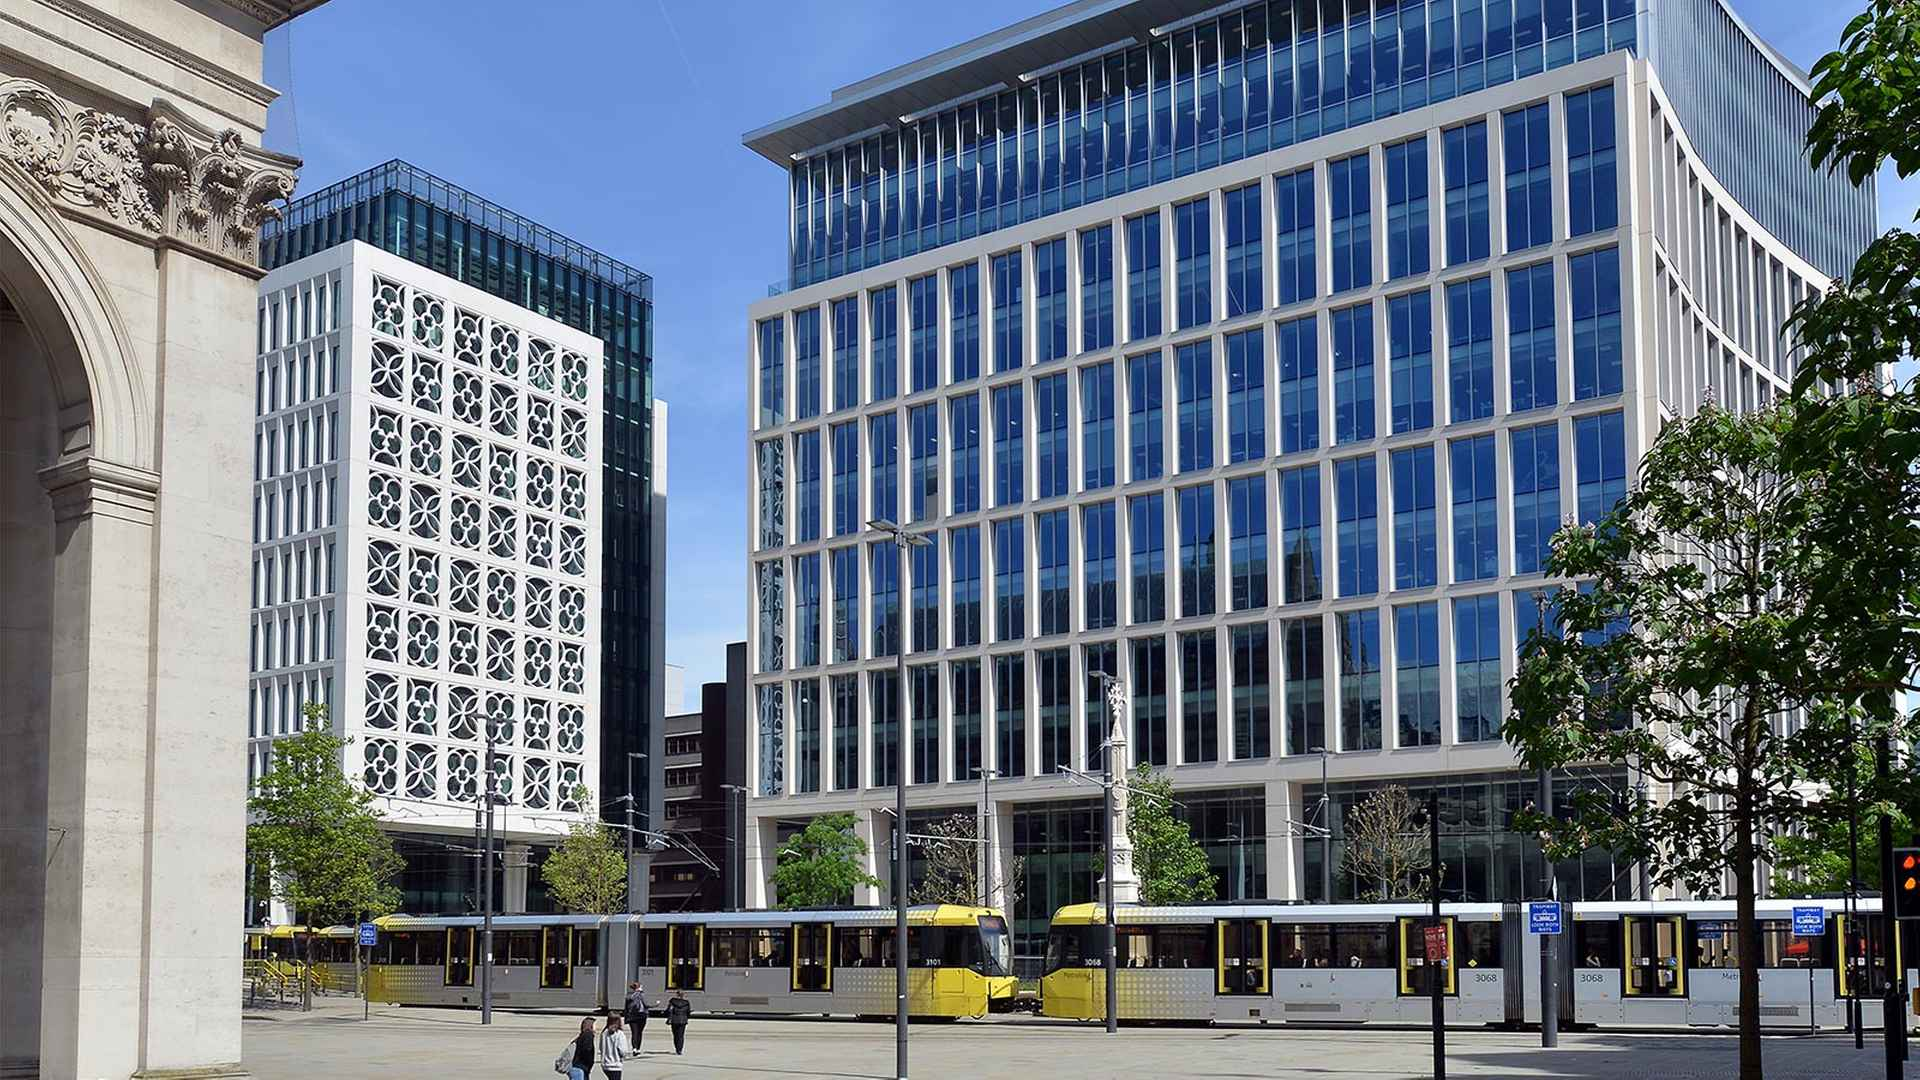 Addleshaw Goddard Office - One St. Peter's Square, Manchester by Addleshaw Goddard